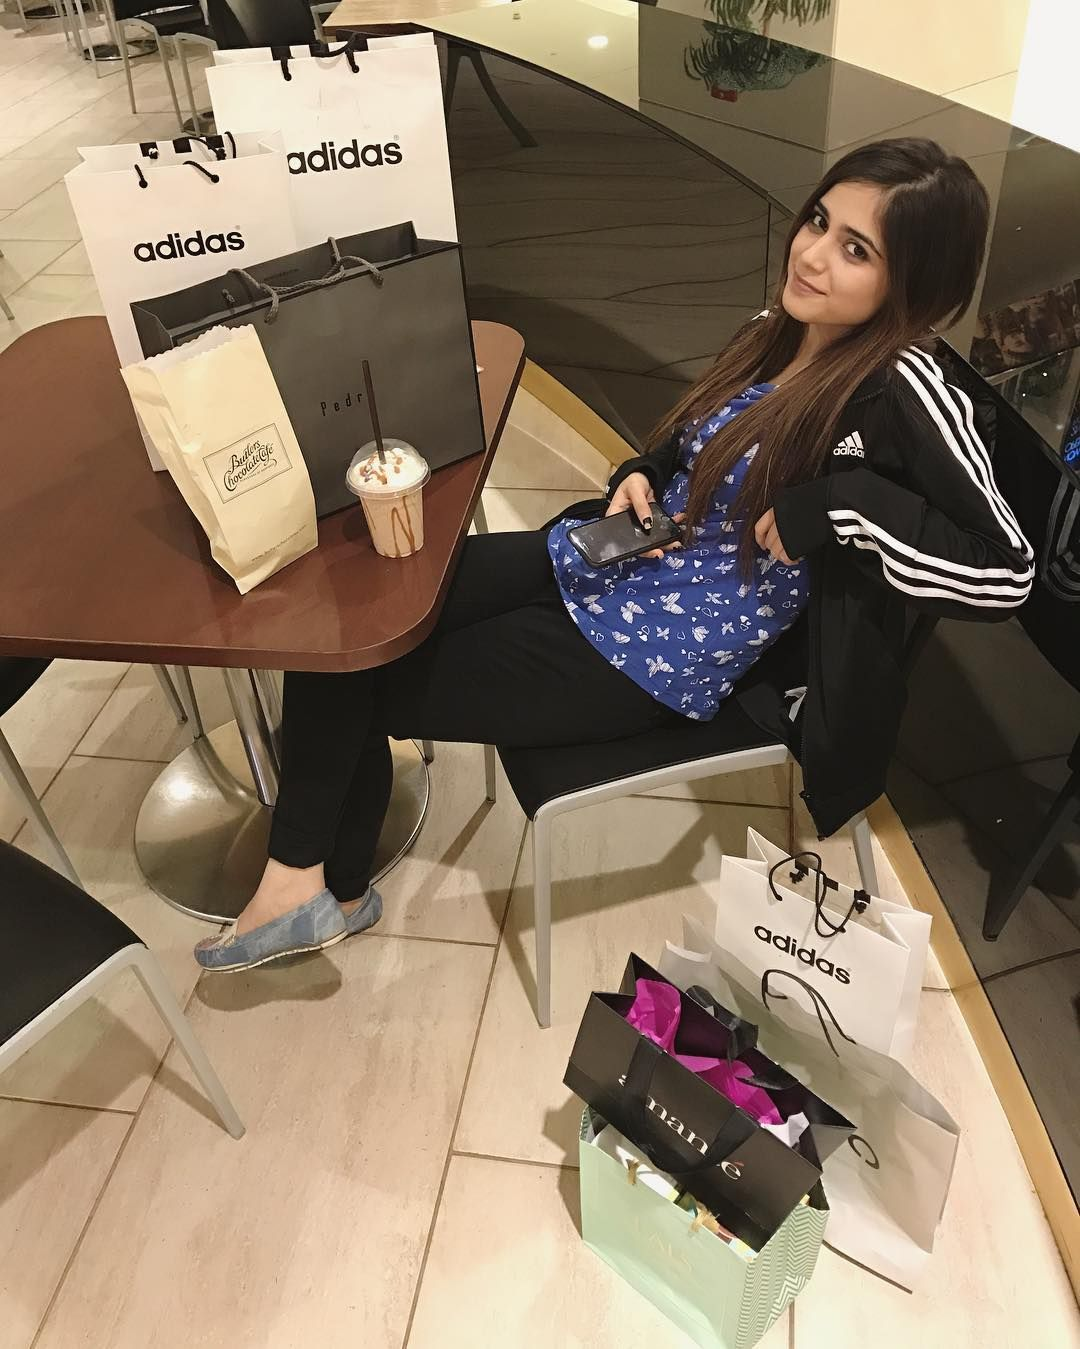 Discussion on this topic: Sporty Outfits For Pakistani Girls-20 Cool Gym , sporty-outfits-for-pakistani-girls-20-cool-gym/